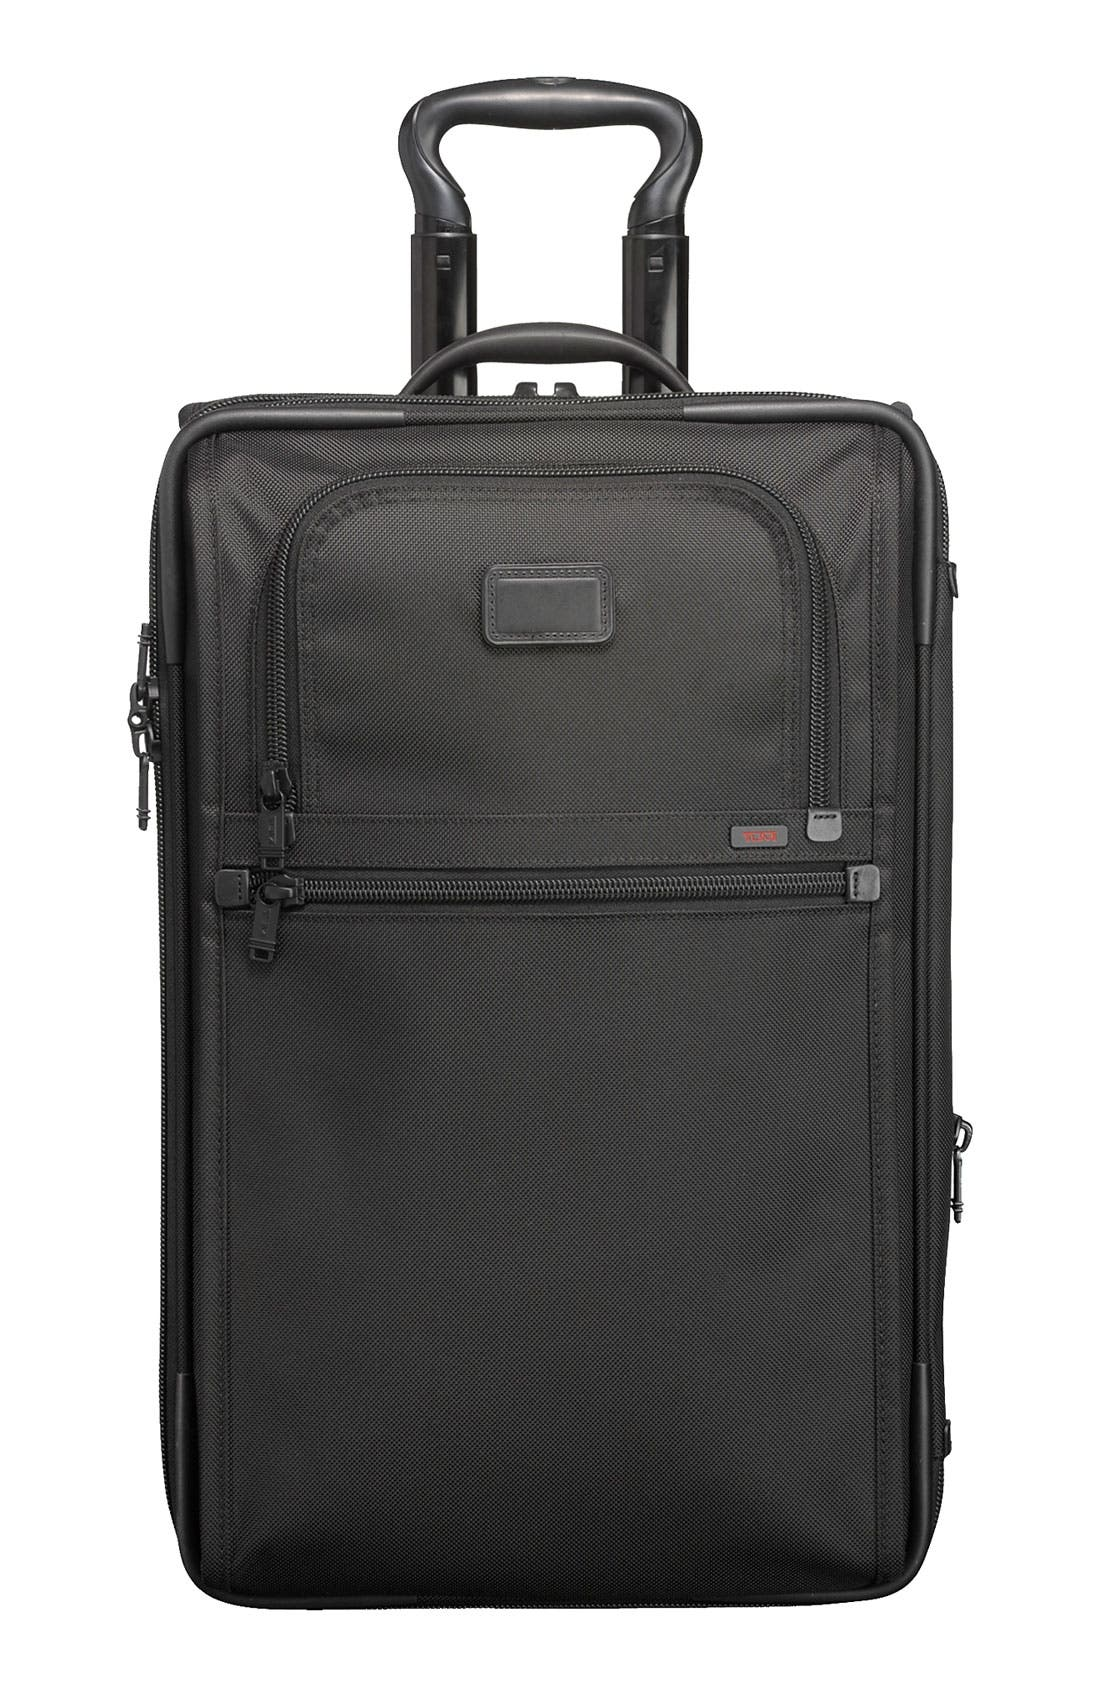 Alternate Image 1 Selected - Tumi 'Alpha' Frequent Traveler Zippered Expandable Carry-On